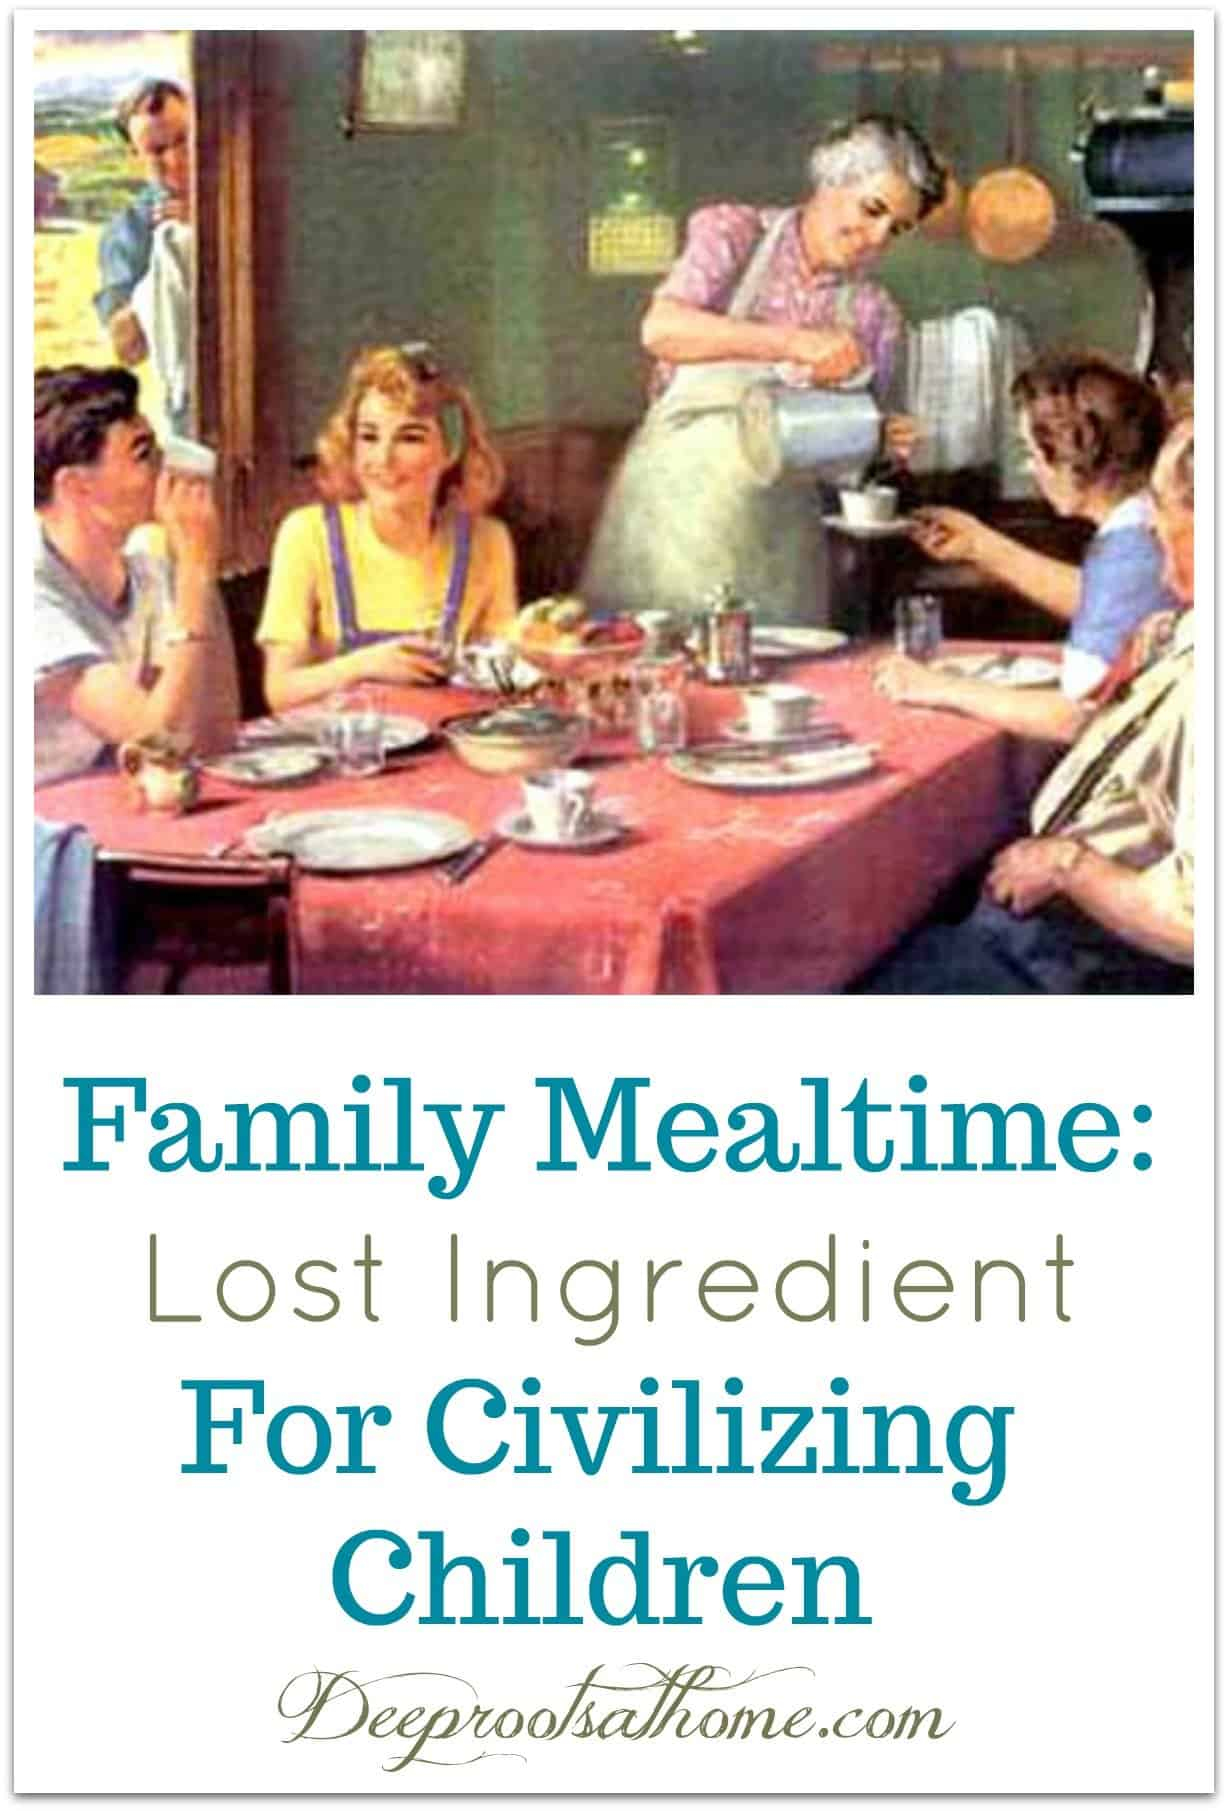 Family Mealtime: Lost Ingredient For Civilizing Children. A family, laughing together, sharing a meal.